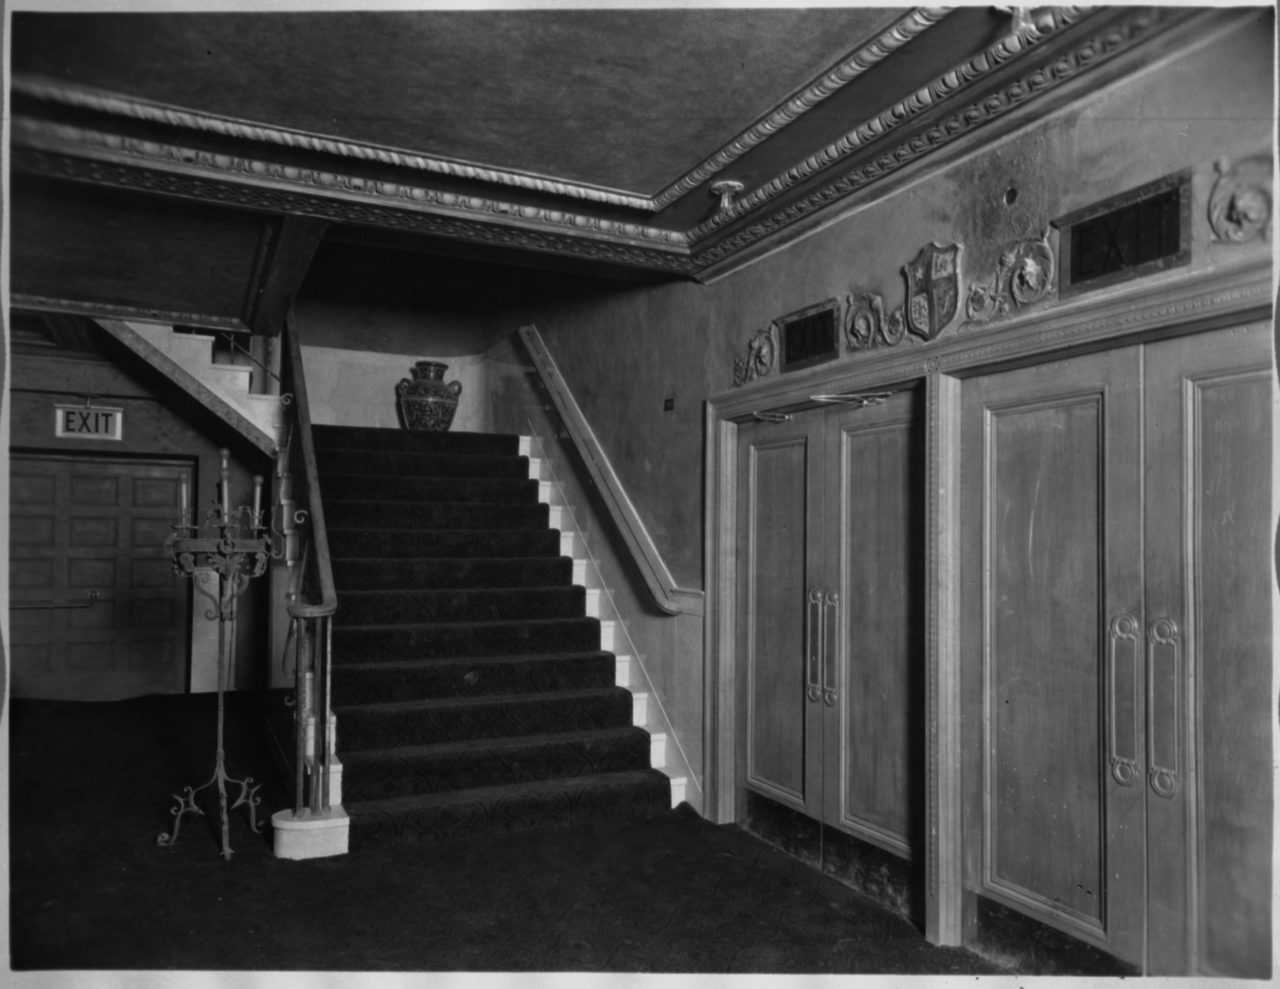 Orchestra stair leading to mezzanine lobby - c. 1927